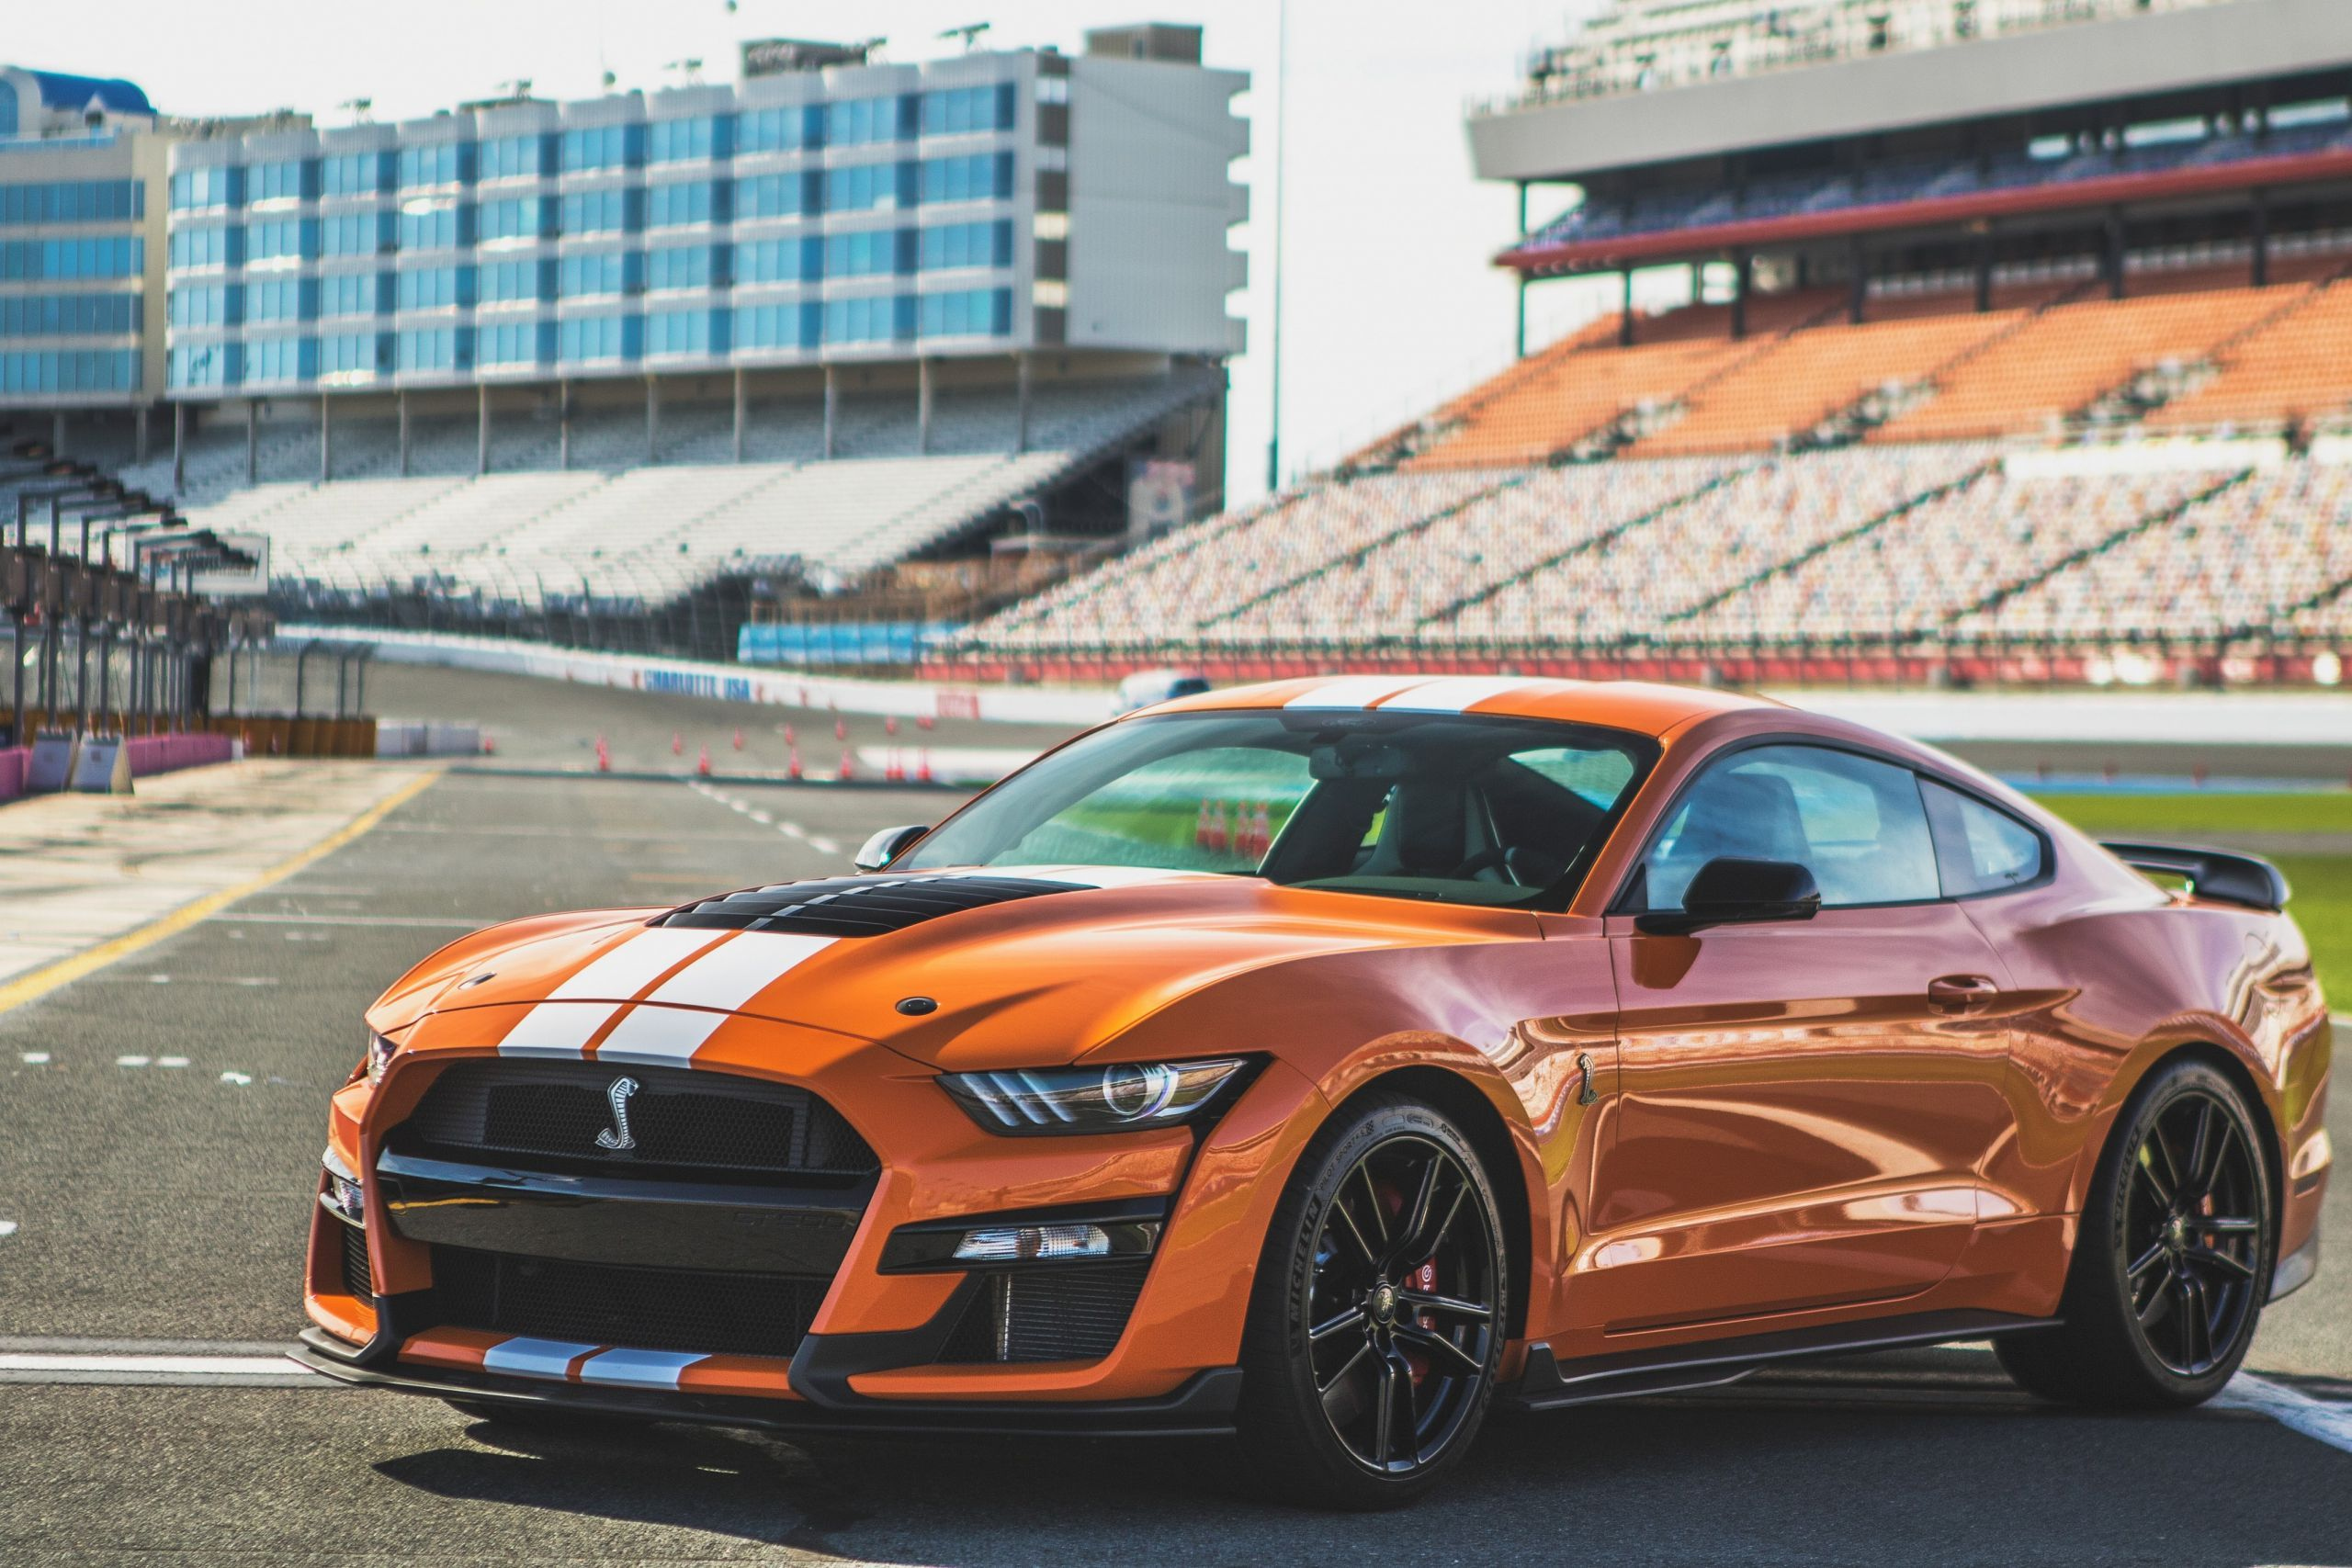 2021 Ford Mustang Shelby Gt500 Price And Release Date In